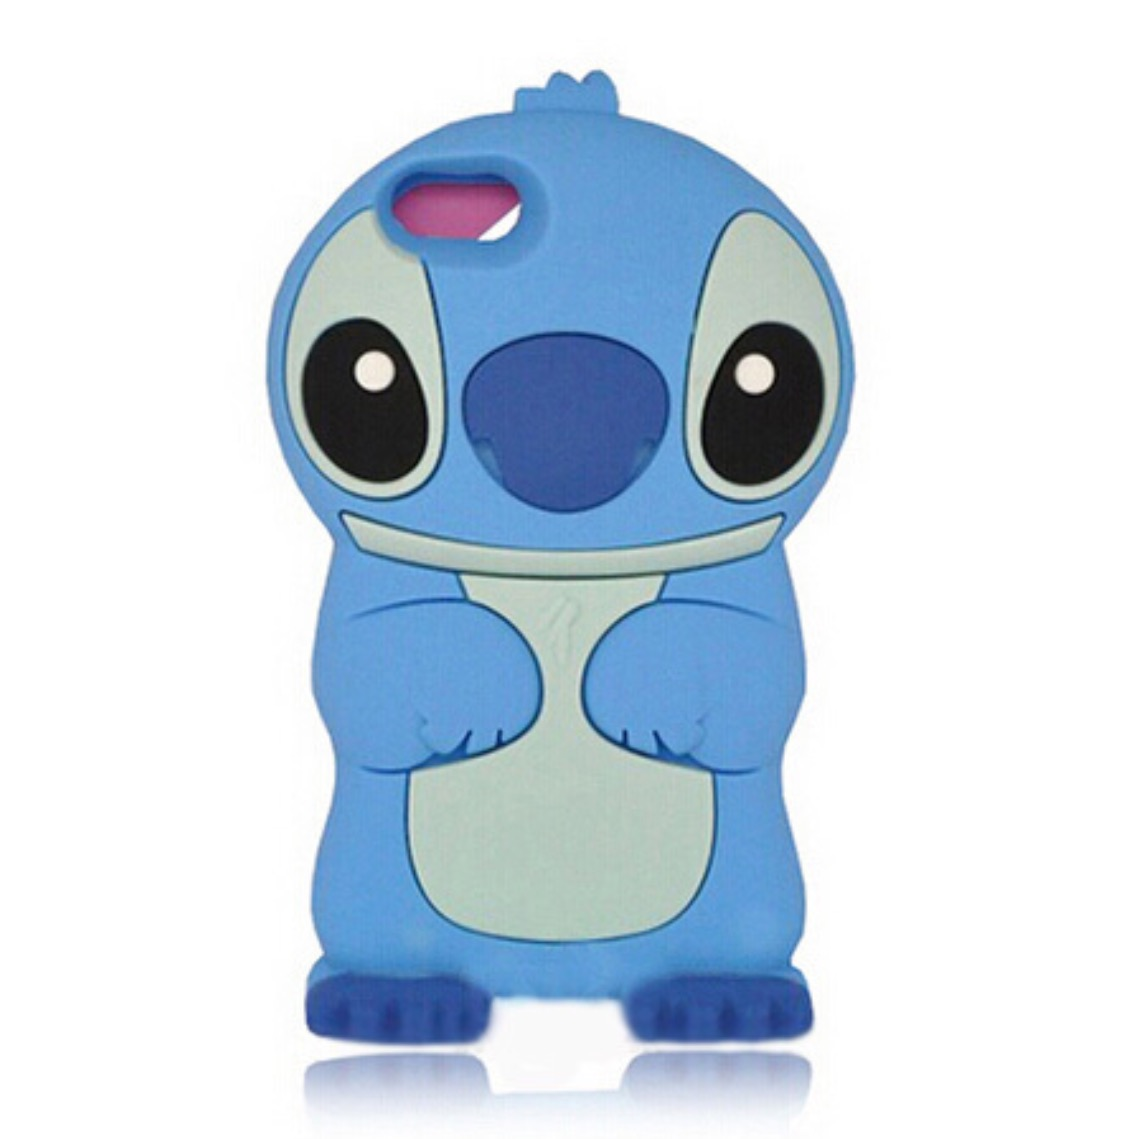 ... Stitch Lilo Phone Case for iPhone and Samsung Phones - Luxurious Bling